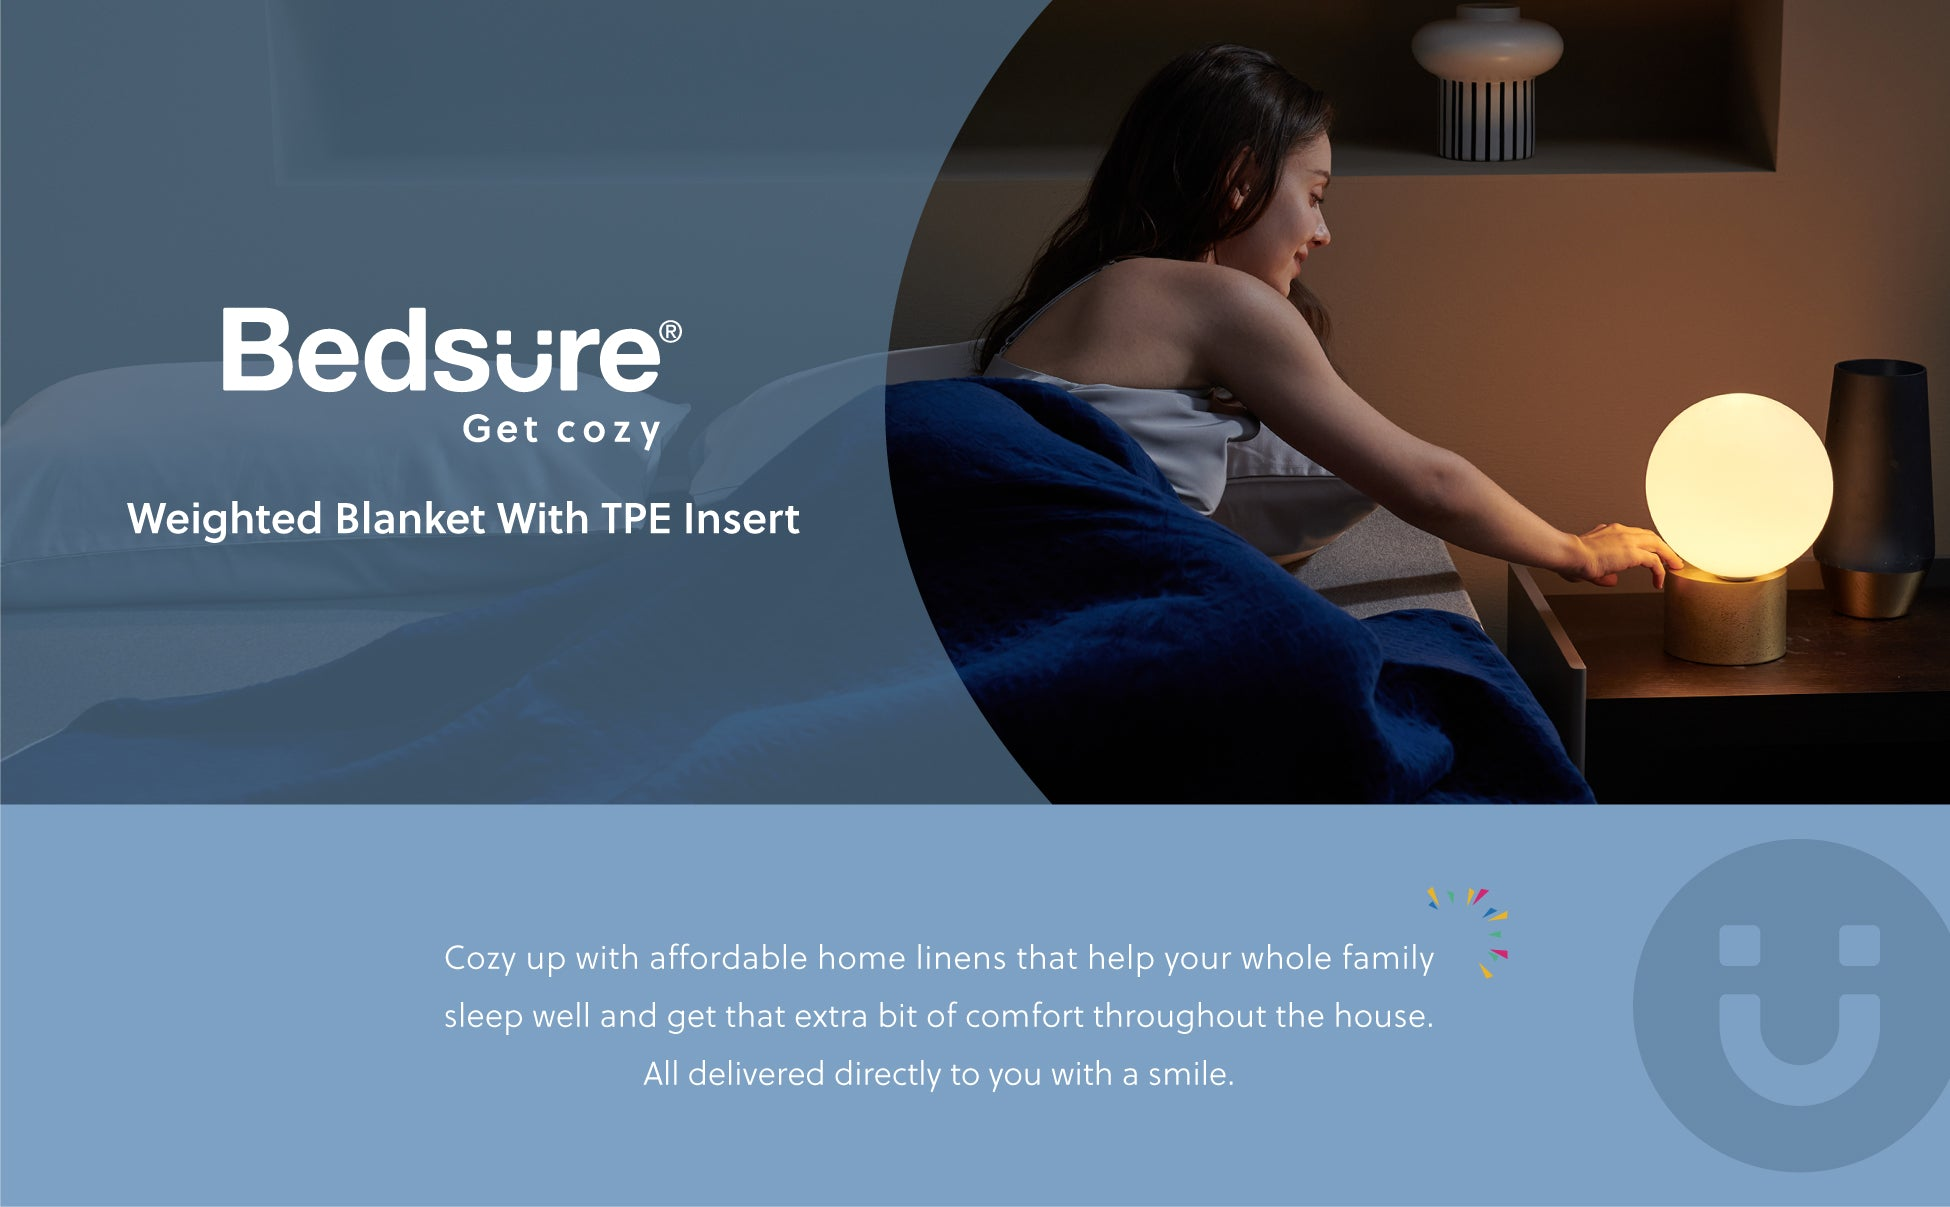 Bedsure | TPE Weighted Blanket - No Glass Beads Heavy Blanket with Breathable TPE Insert 1